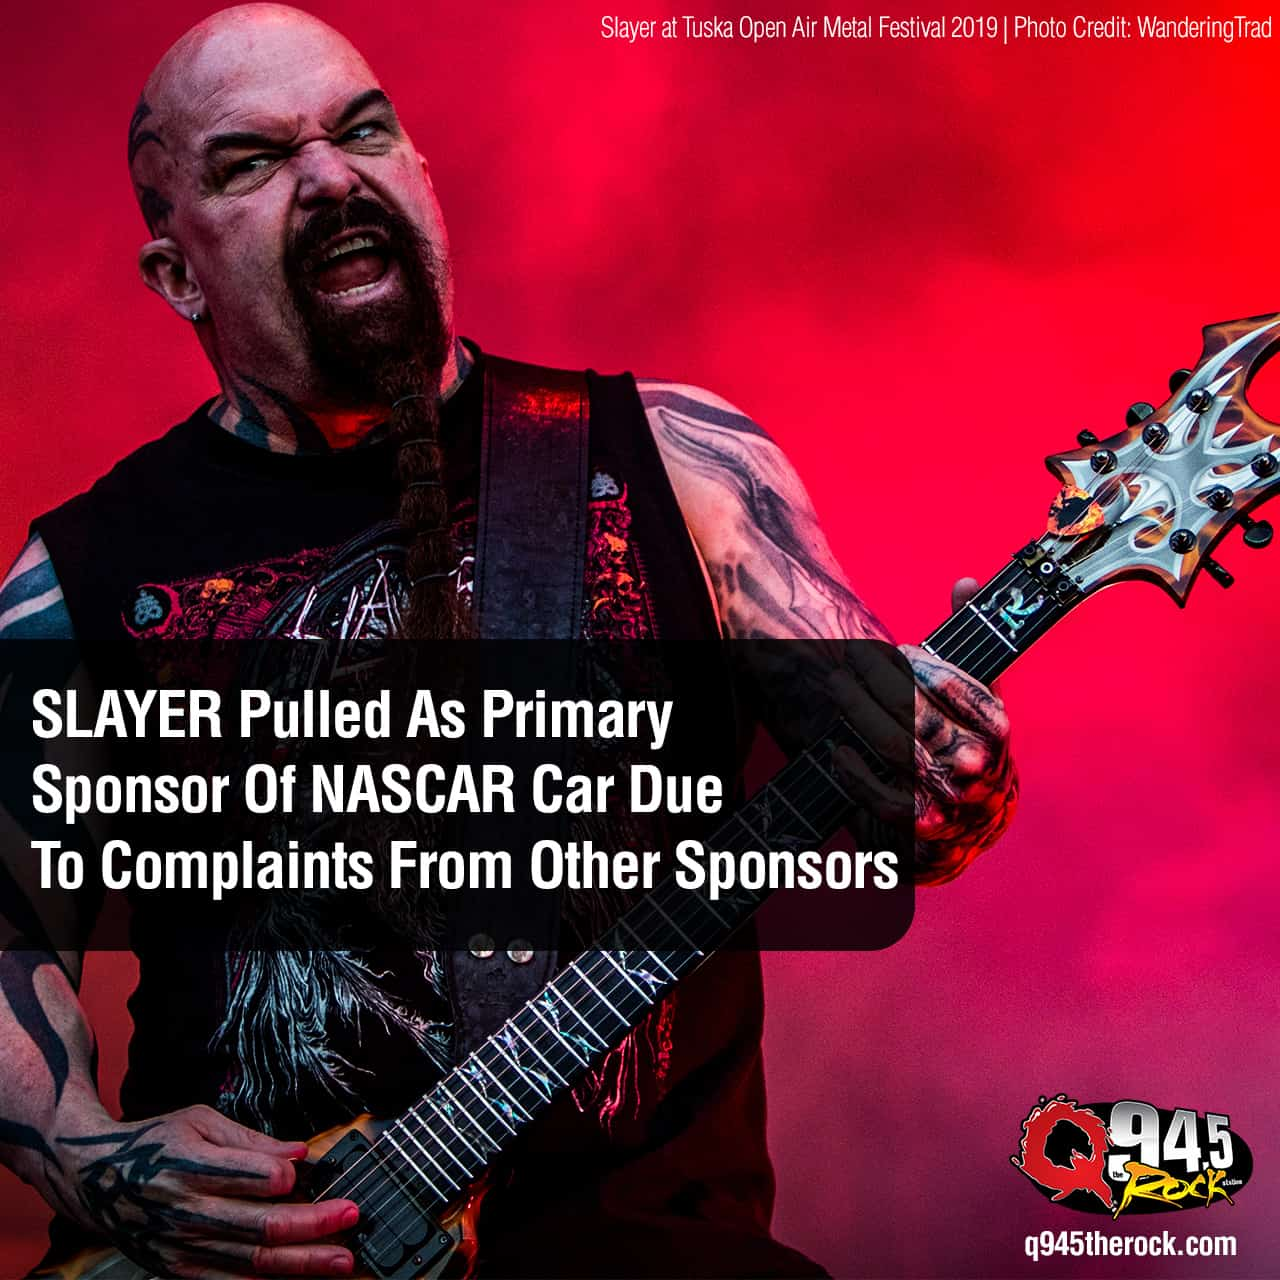 SLAYER Pulled As Primary Sponsor Of NASCAR Car Due To Complaints From Other Sponsors